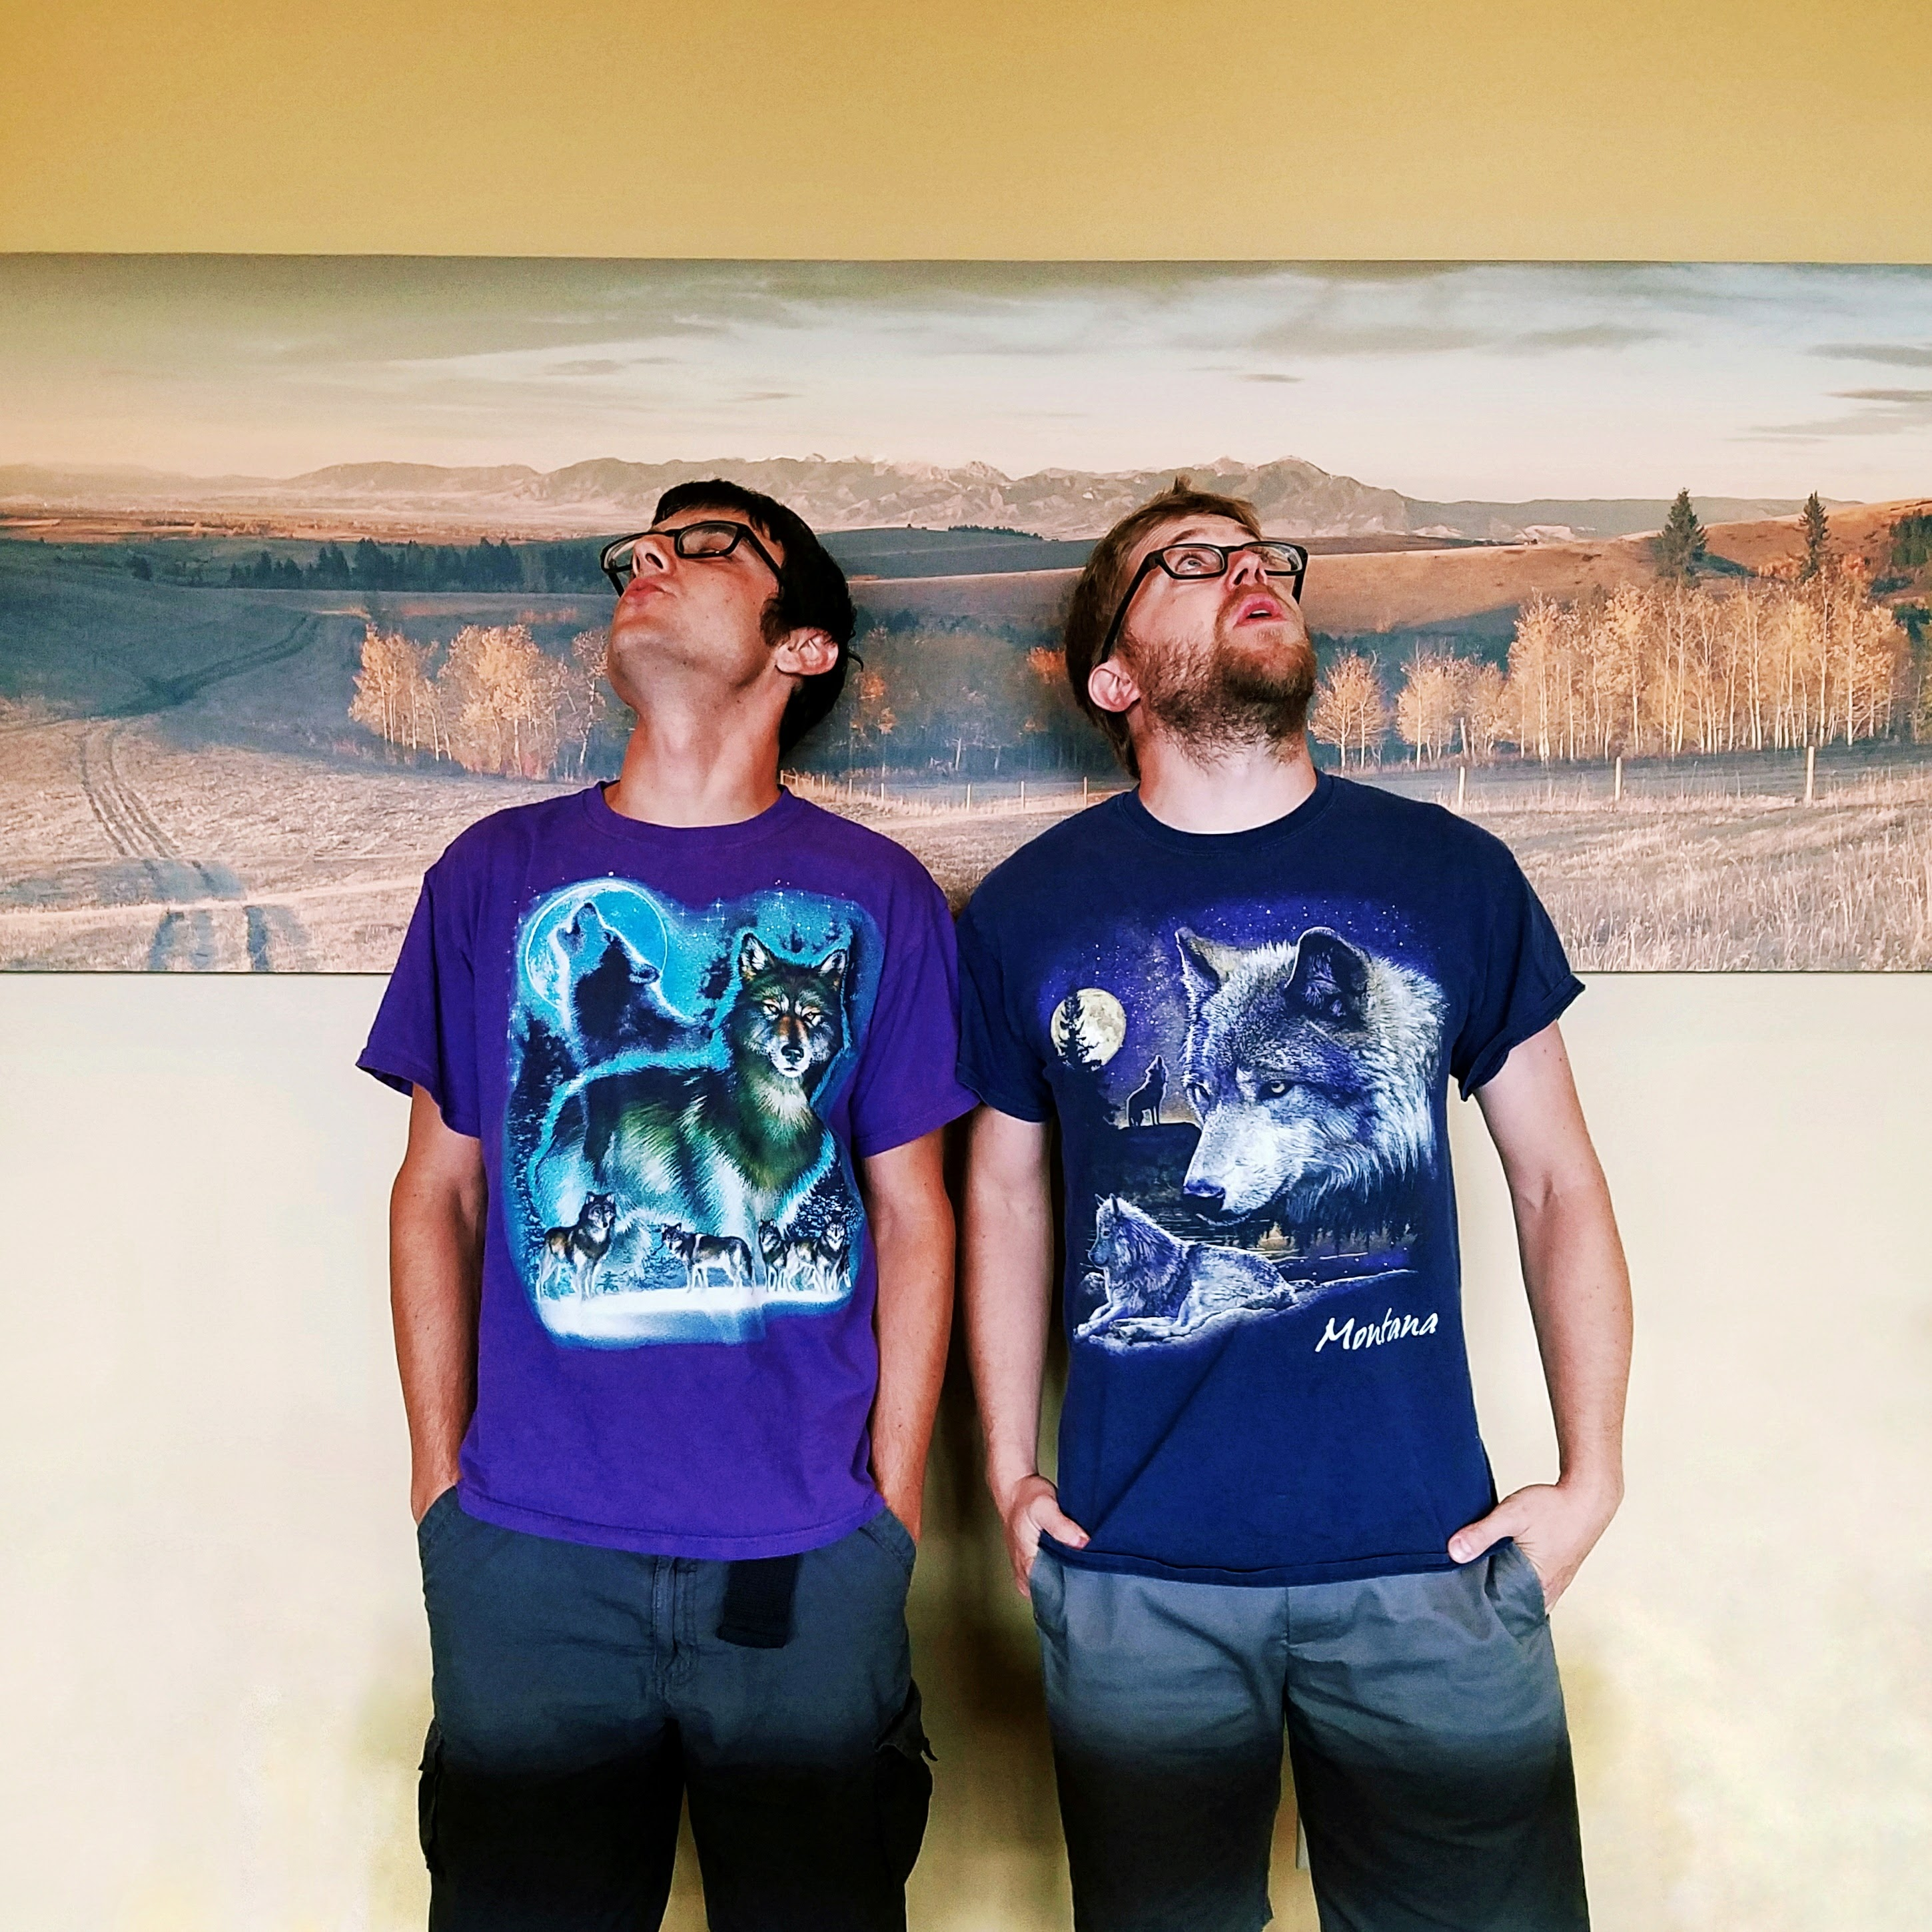 Two members of the TRG team embrace their wild side on wolf shirt Wednesday.